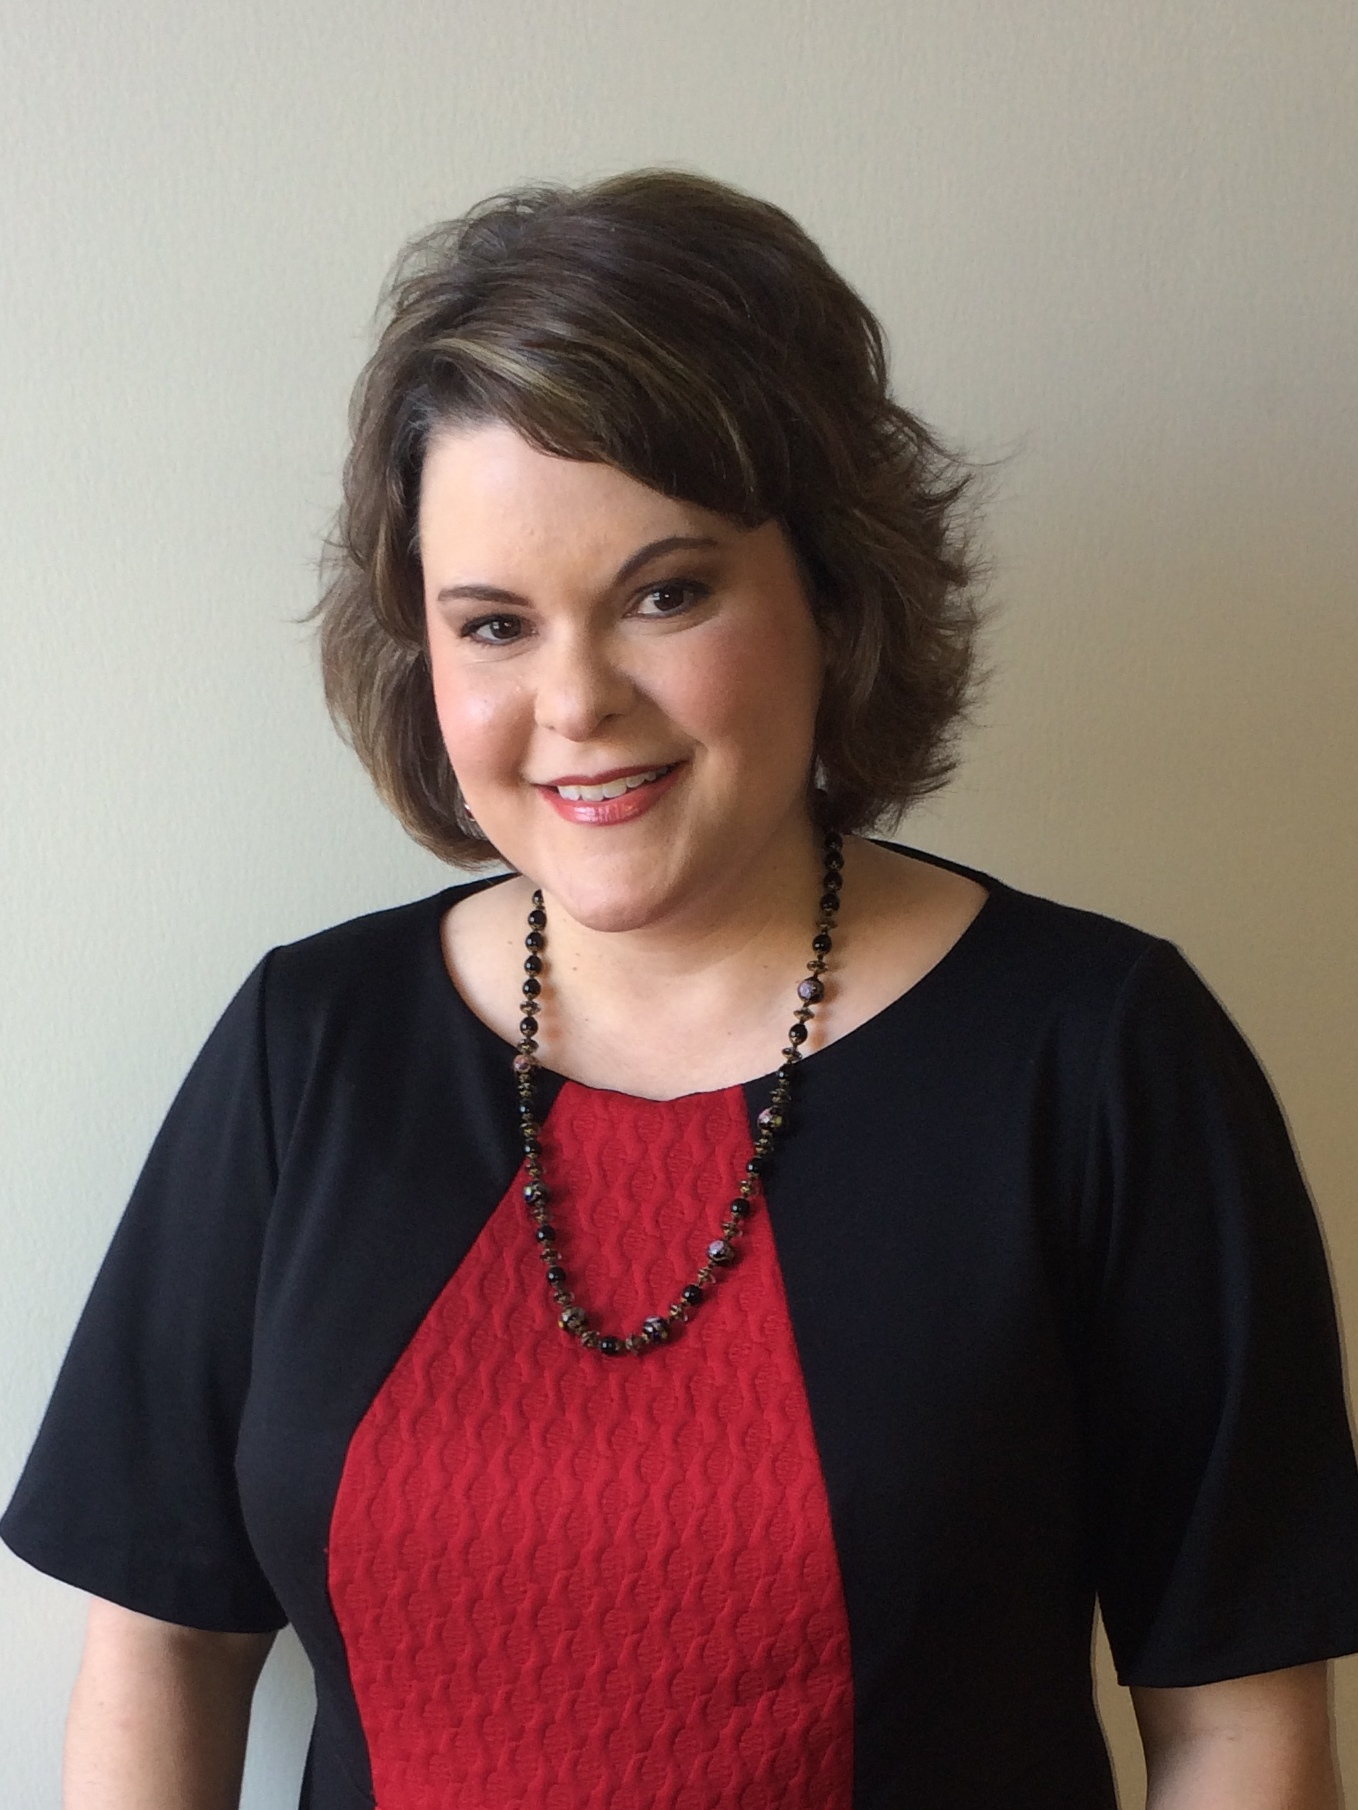 Kelly Davis meet kelly davis: a q&a with the incoming prssa national